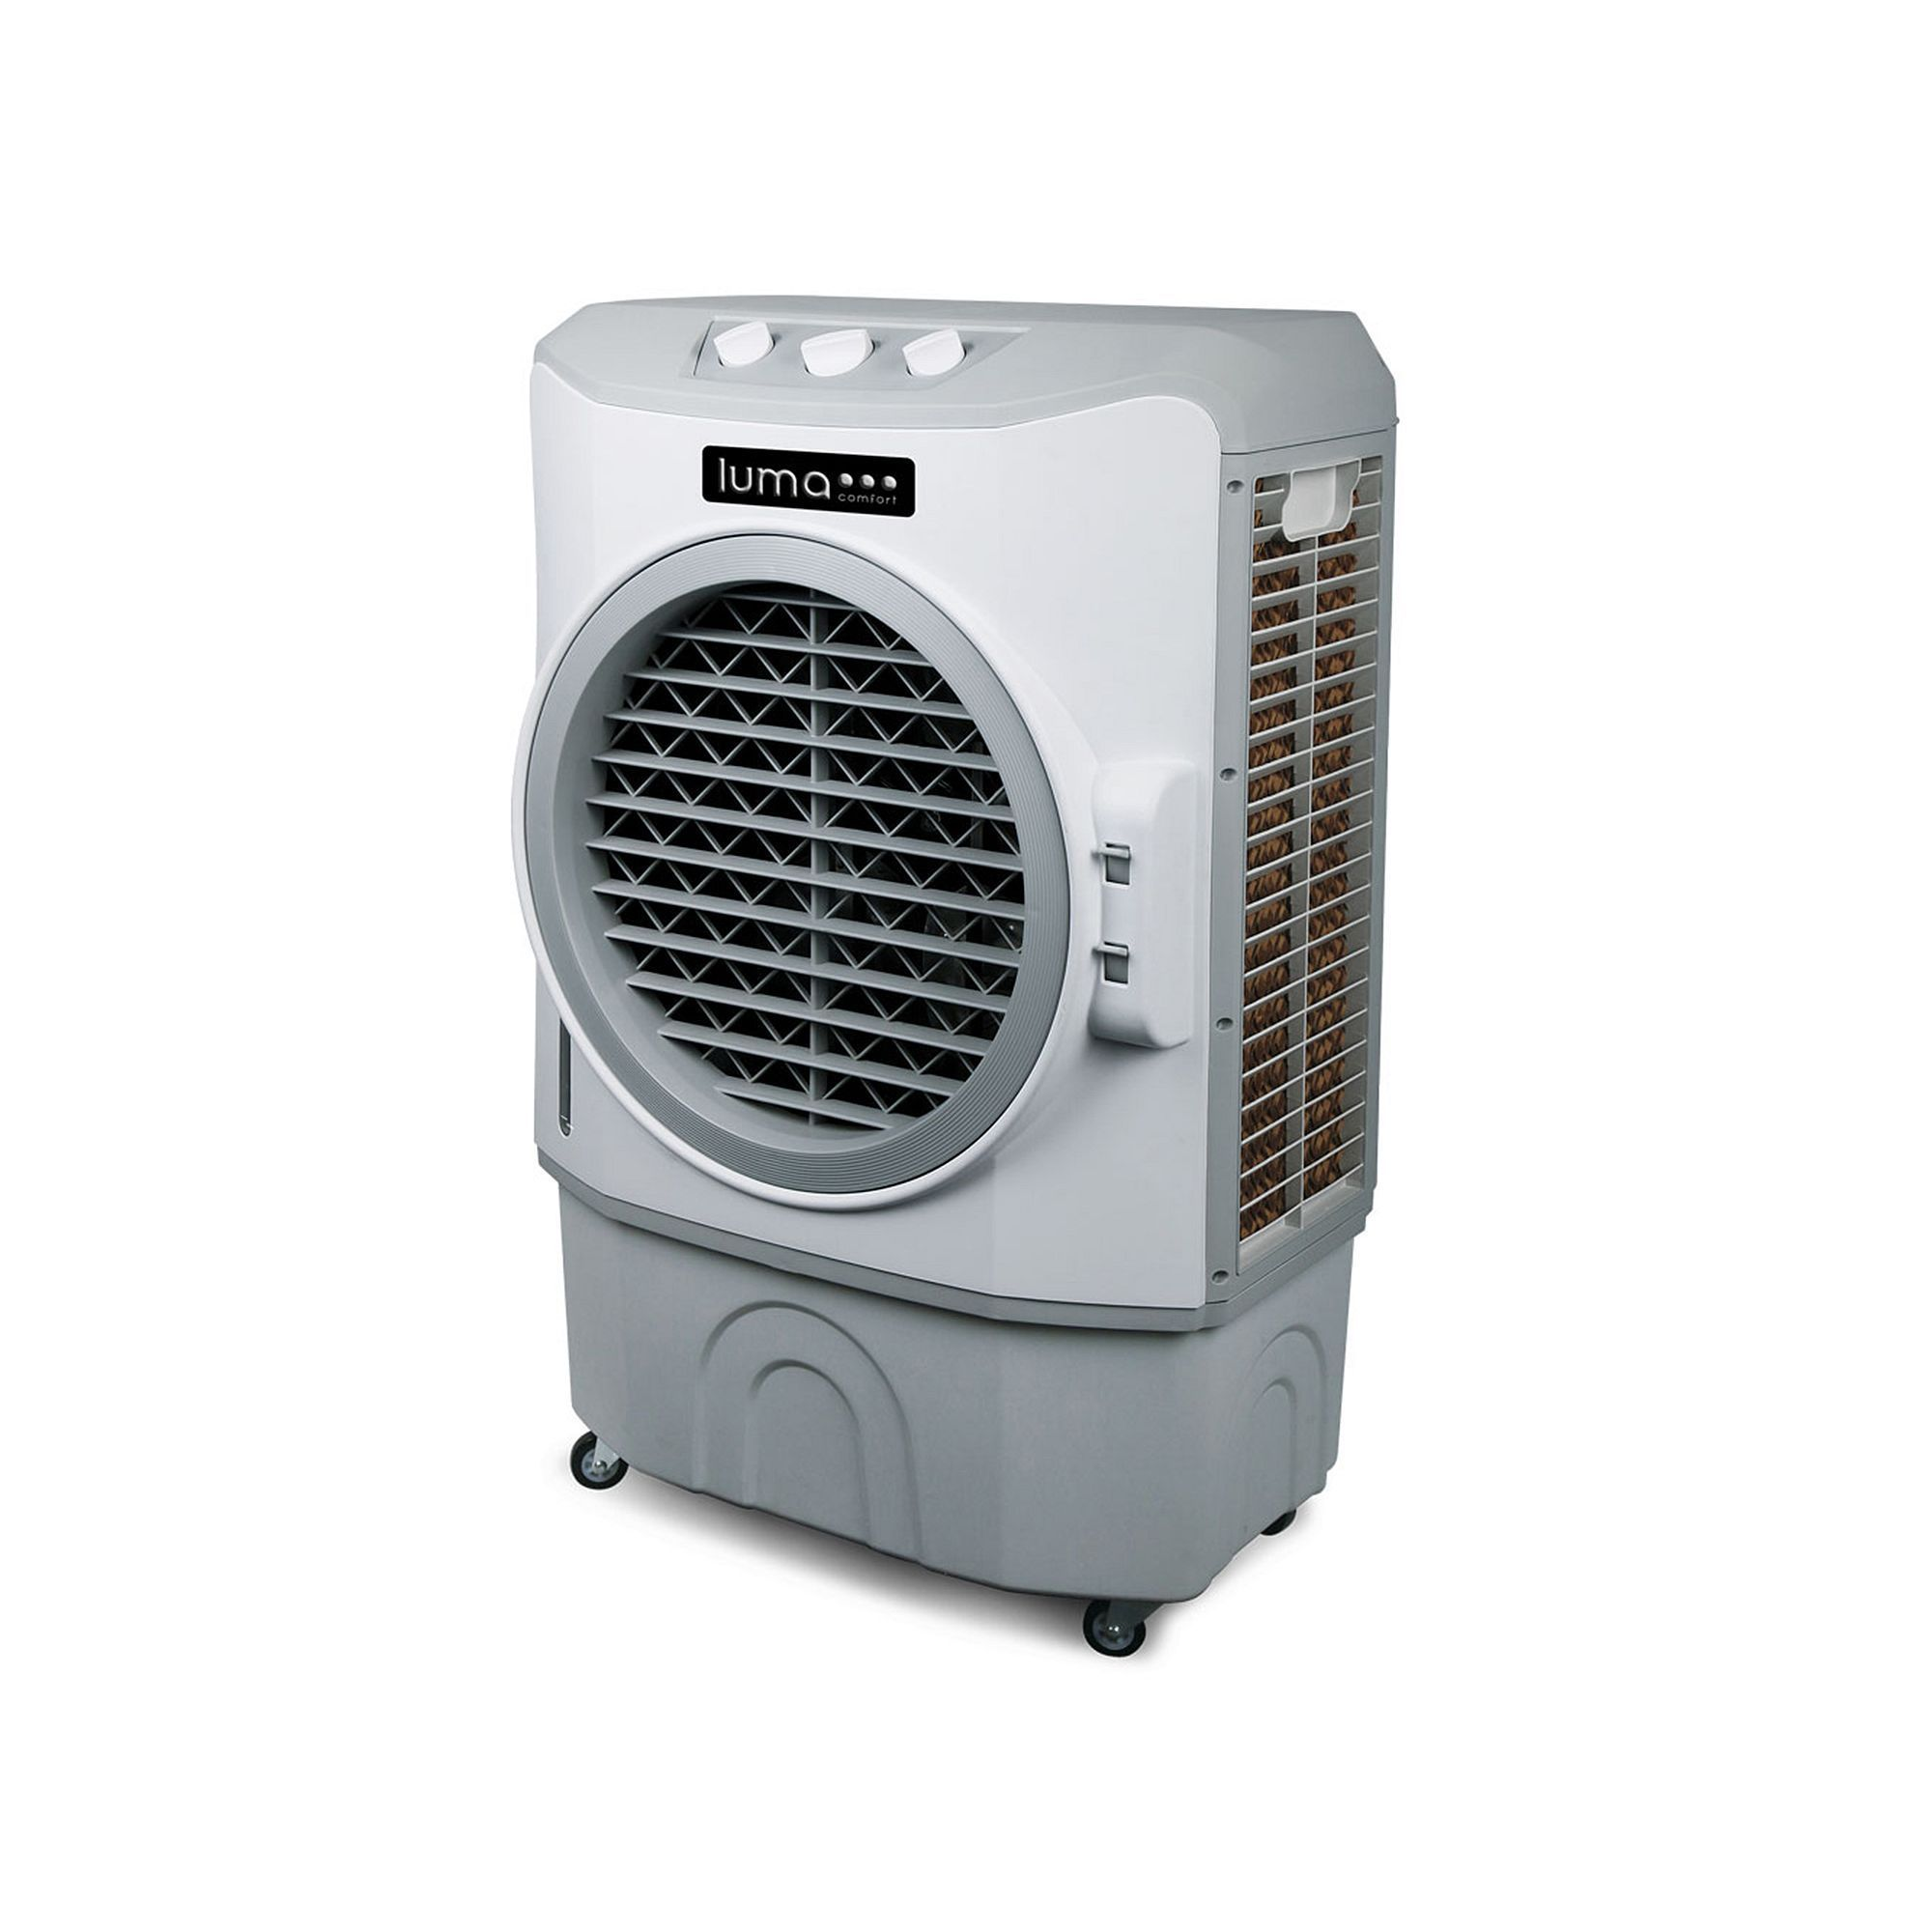 Garage Water Fan Luma Comfort High Power Evaporative Cooler In 2019 Products